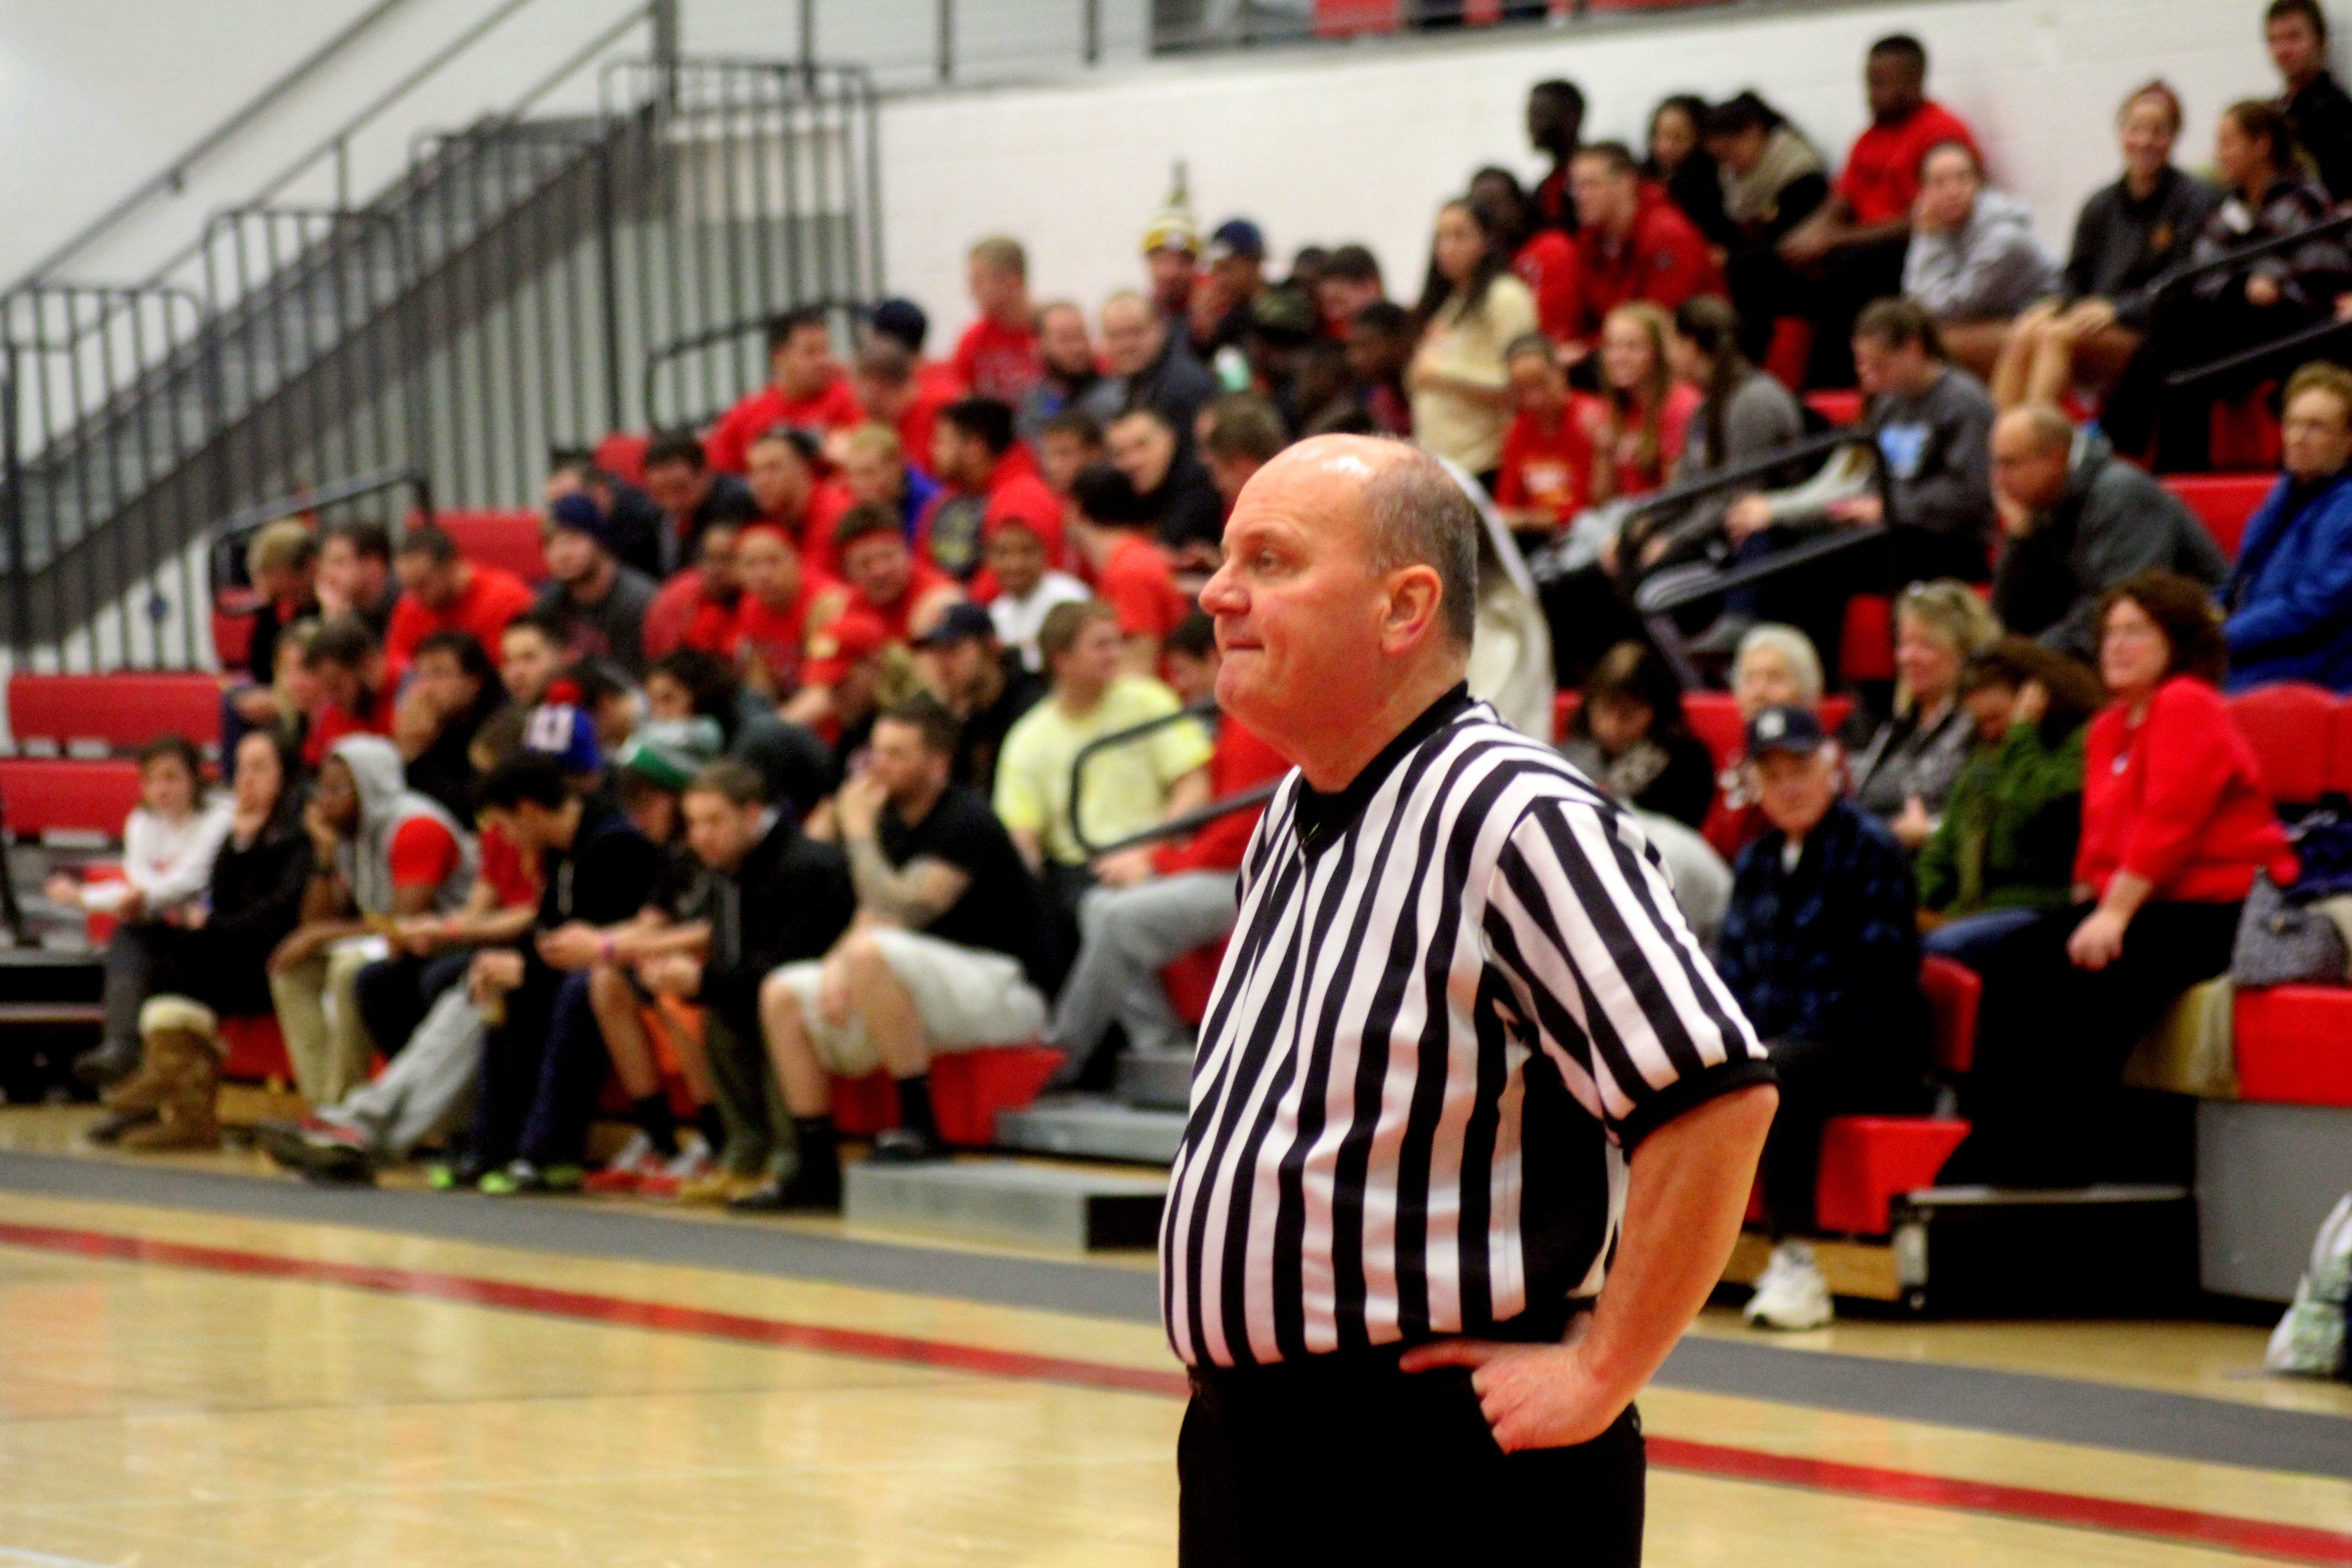 Referee Greg Moyer, at ease, during Delaware Valley's romp of King's College | Staff Photographer: Tyler R. Tynes